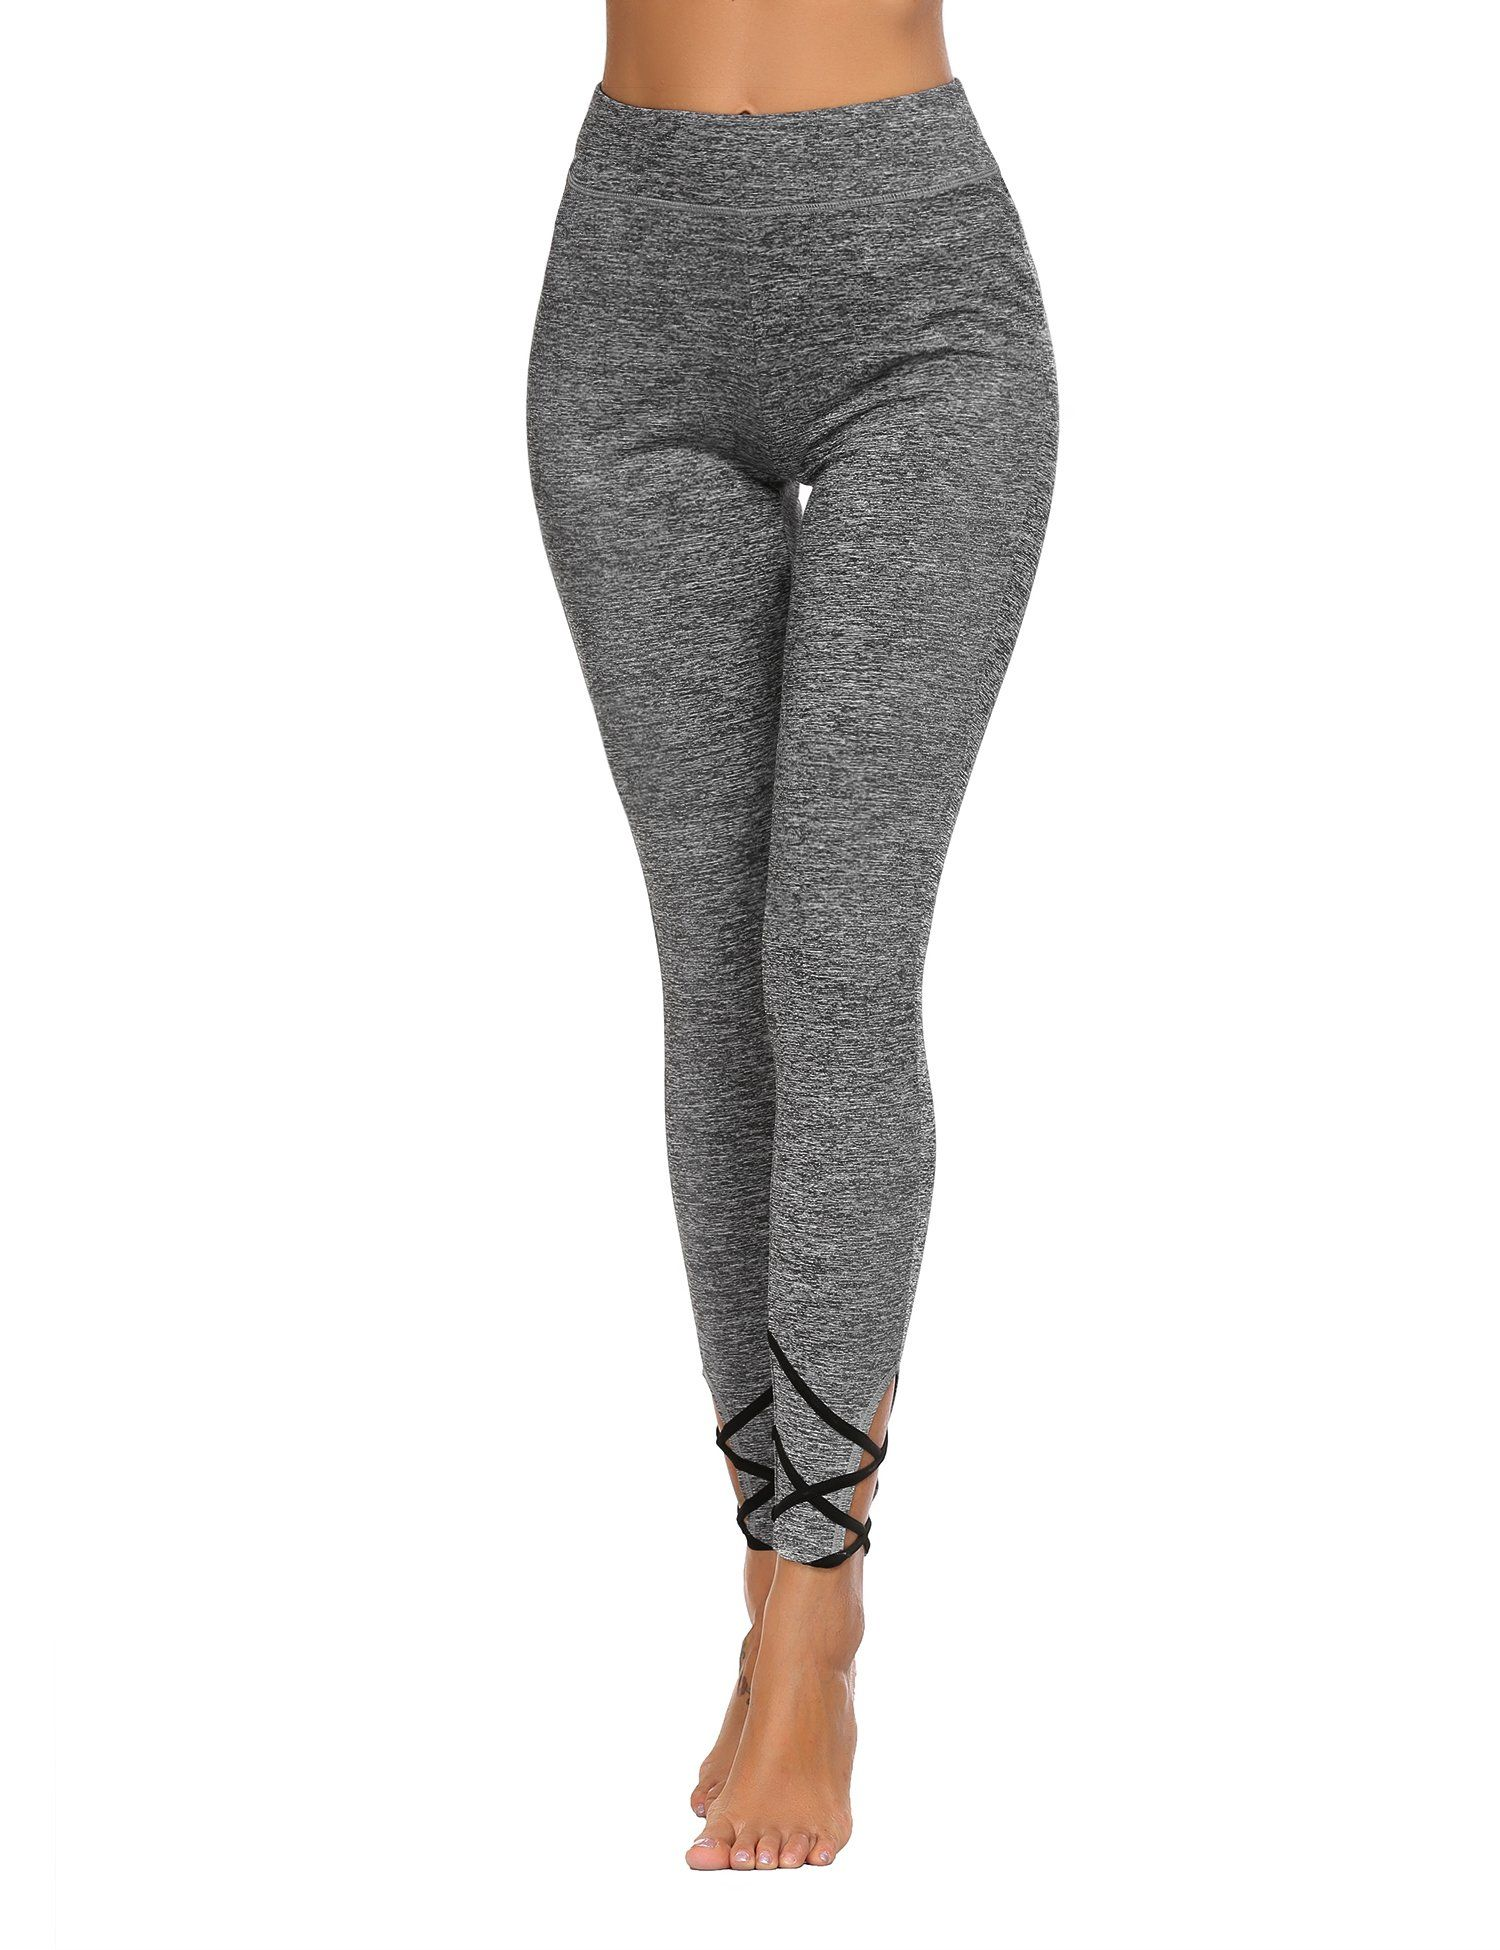 f31eef00b6822 Ekouaer Womens Yoga Pants Legging StringEnd Workout  Tights(Gray,Small) ** Check out this great product. (This is an  affiliate link)